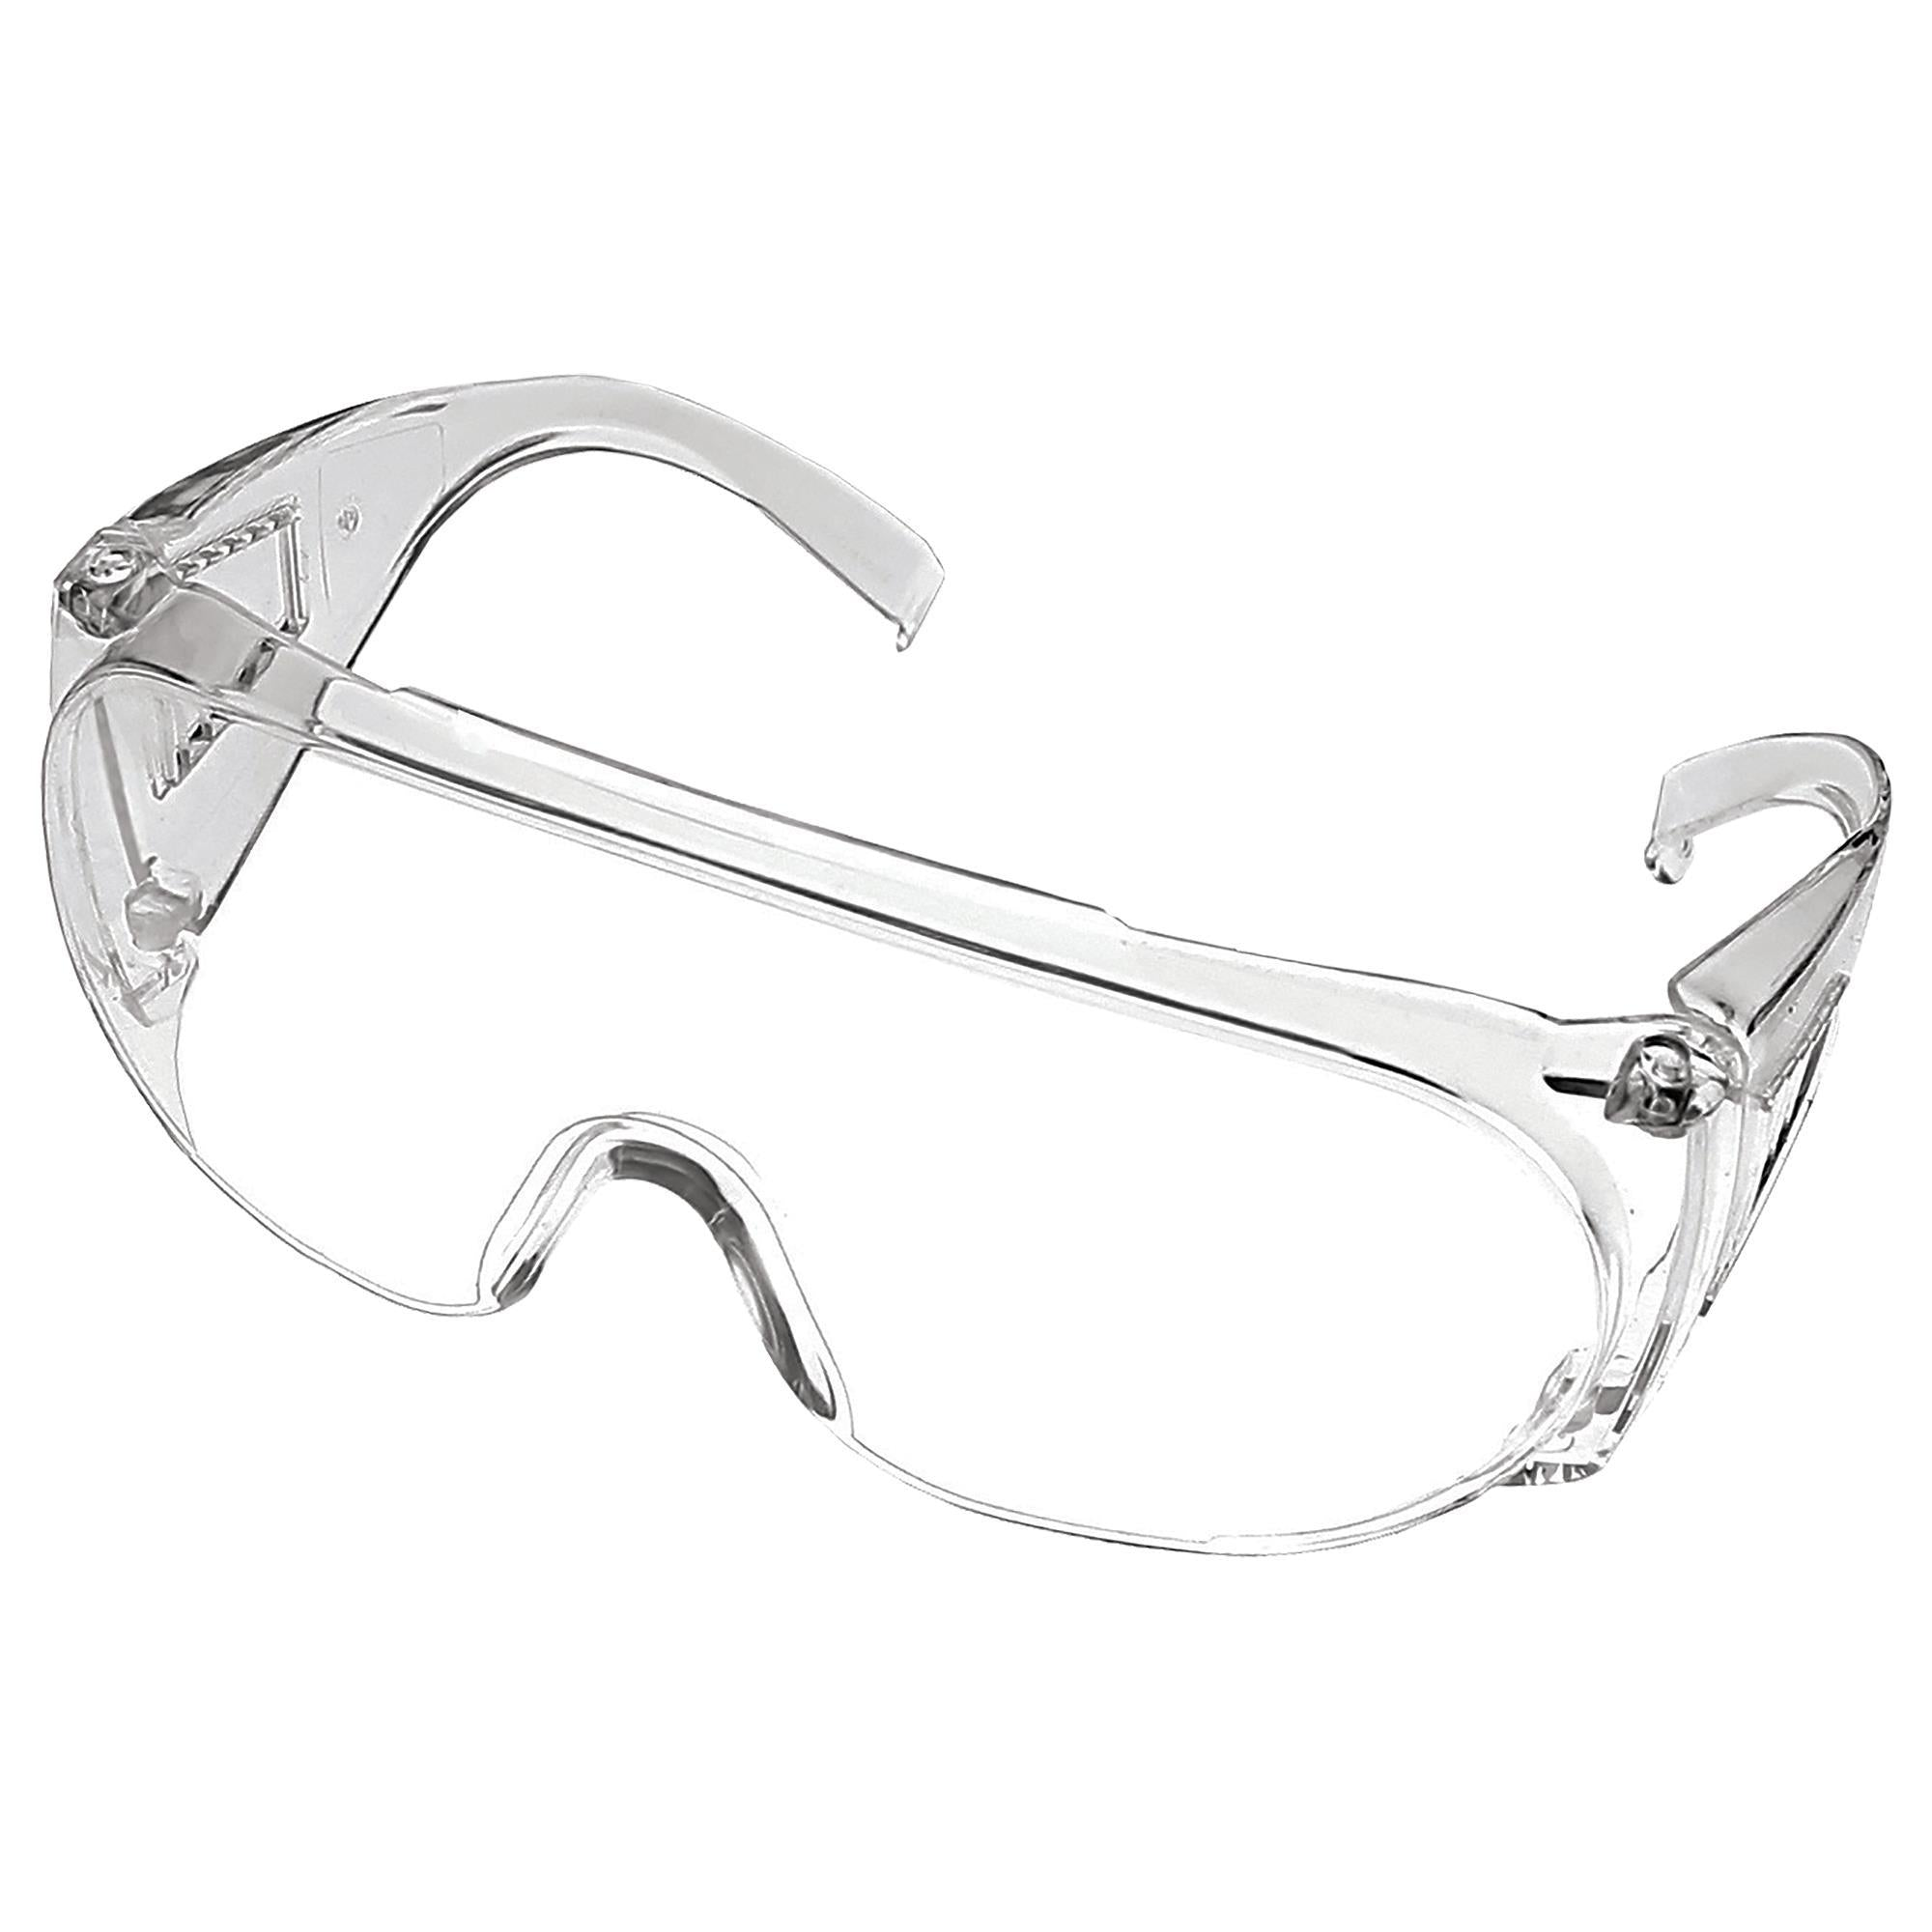 605 Visitor Safety Glasses 1PC